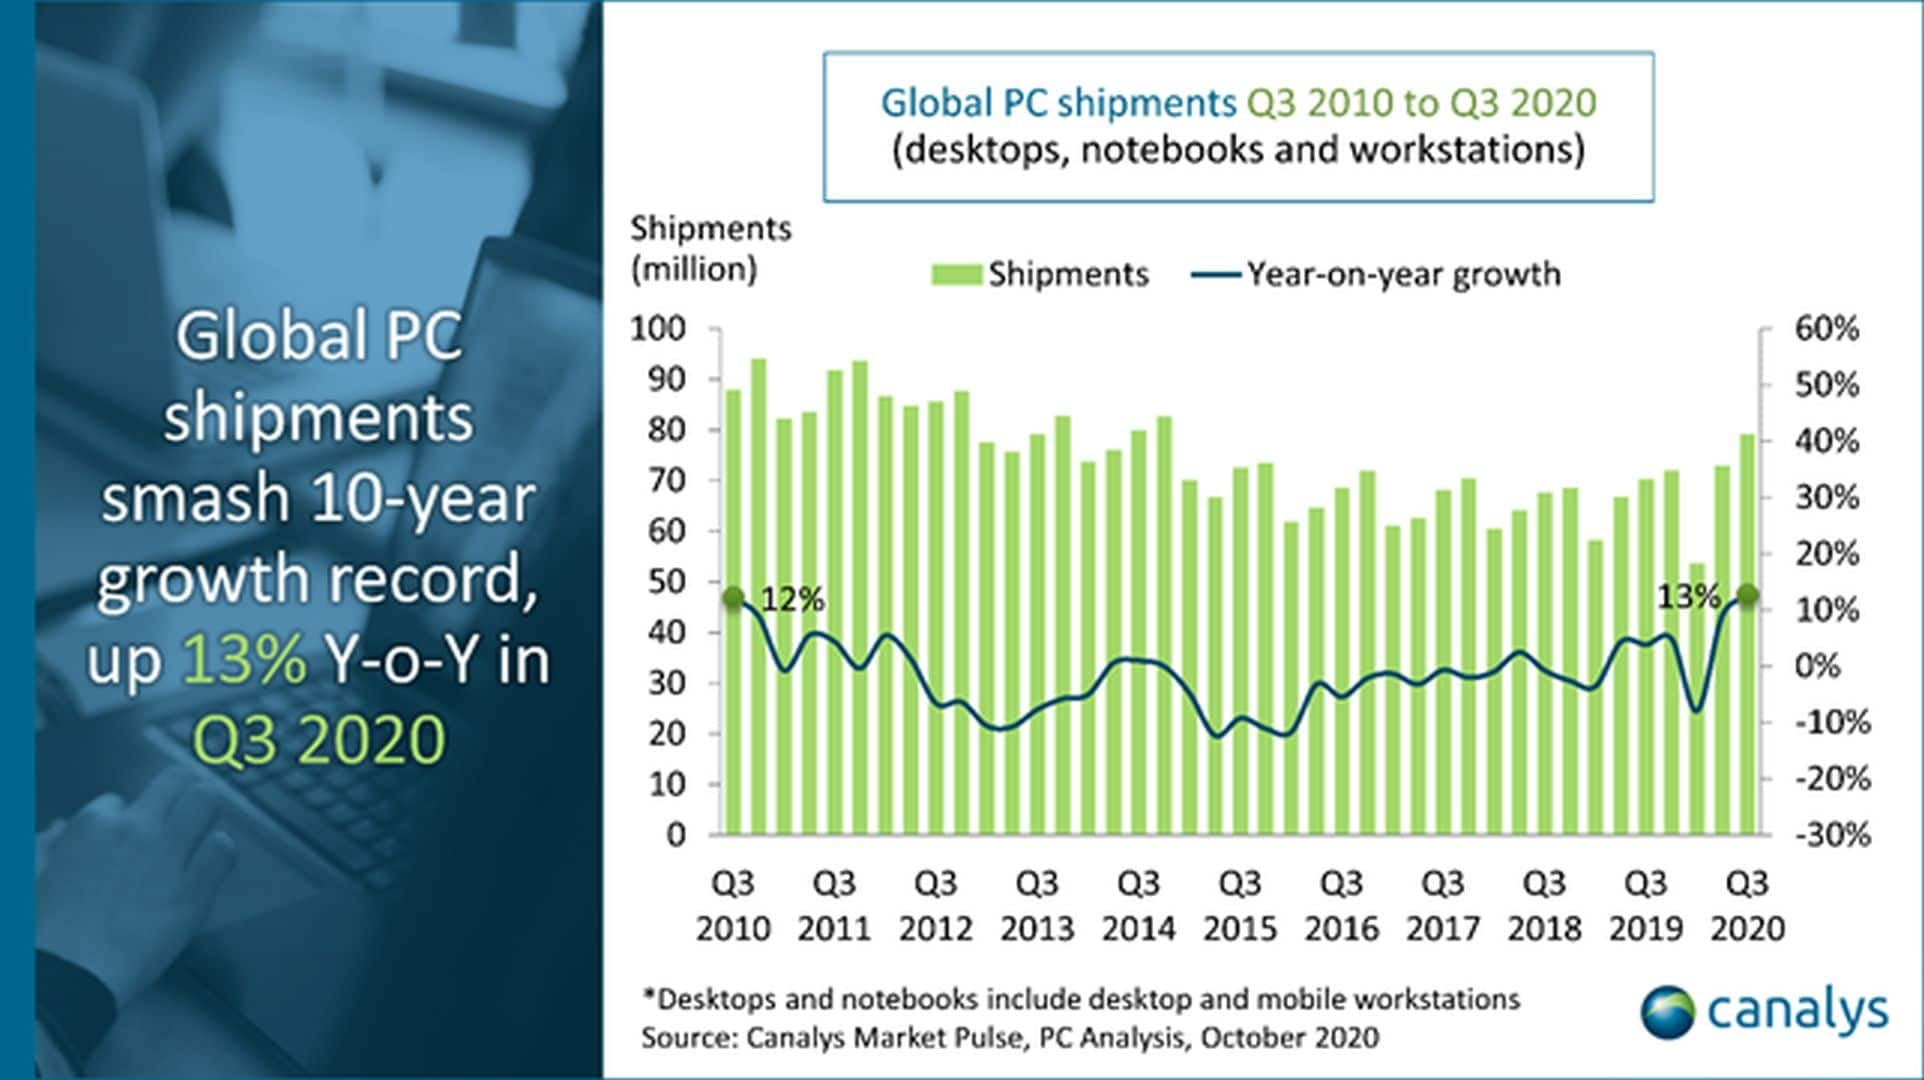 Growth of PC shipments